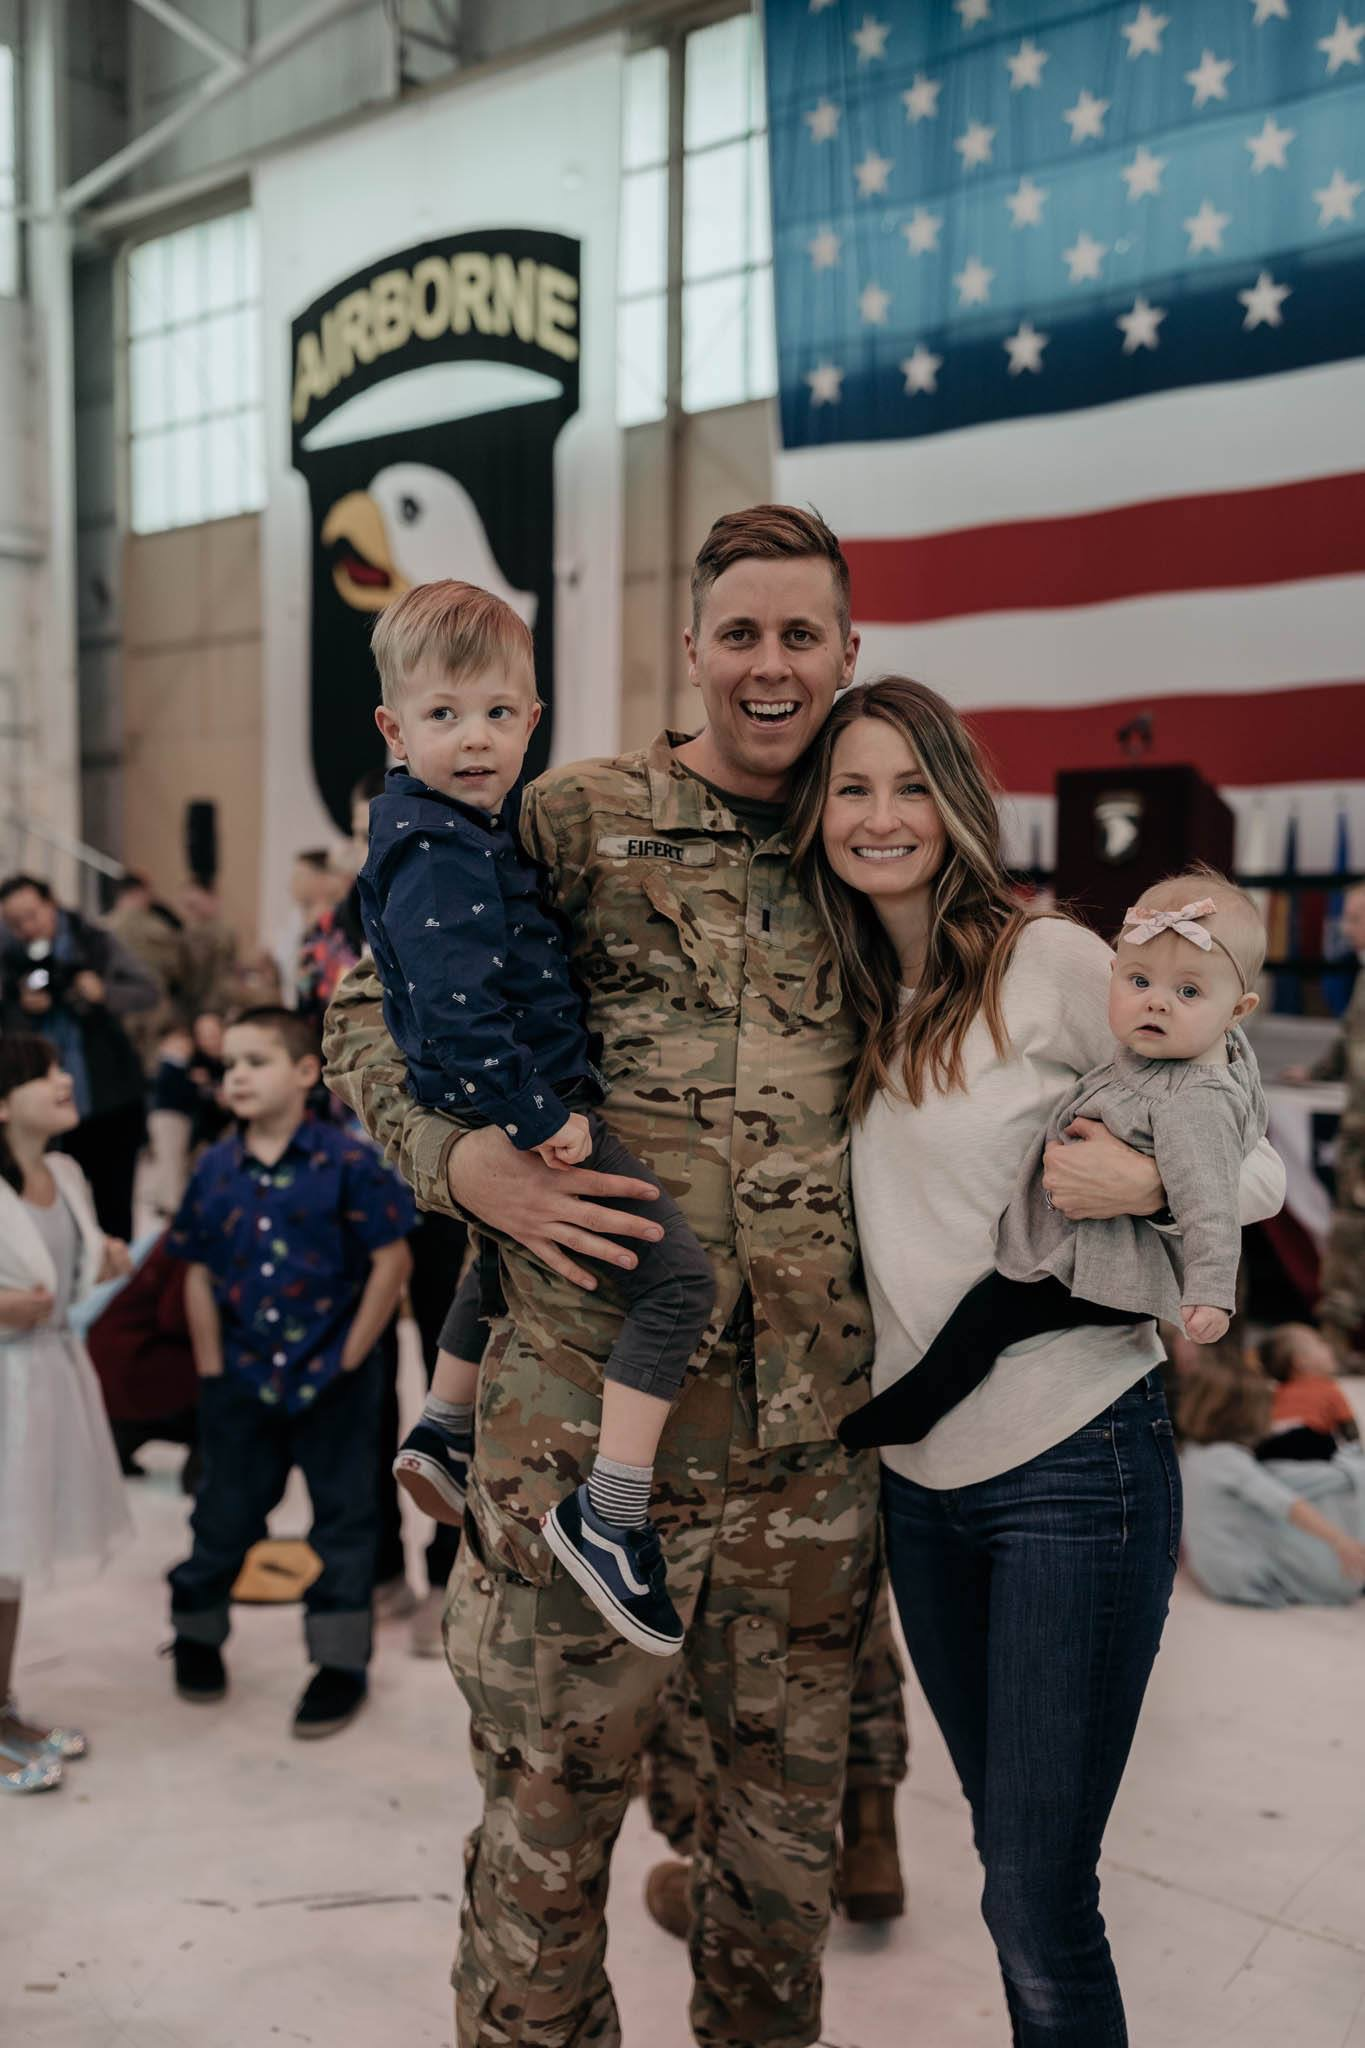 Familing welcoming home their soldier from deployment